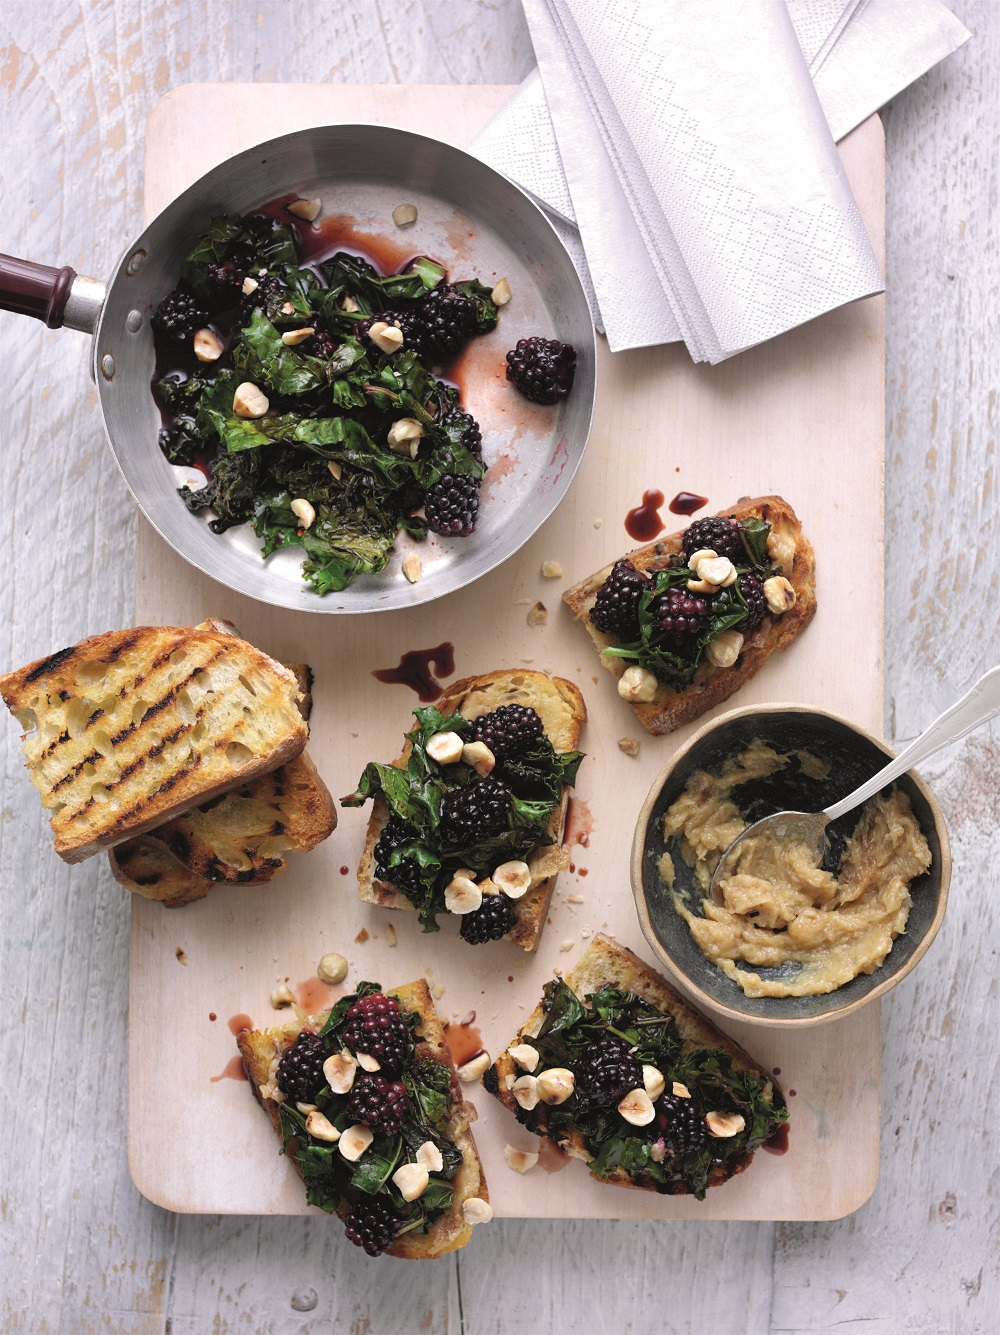 Superberry Kale And Roasted Garlic Bruschetta